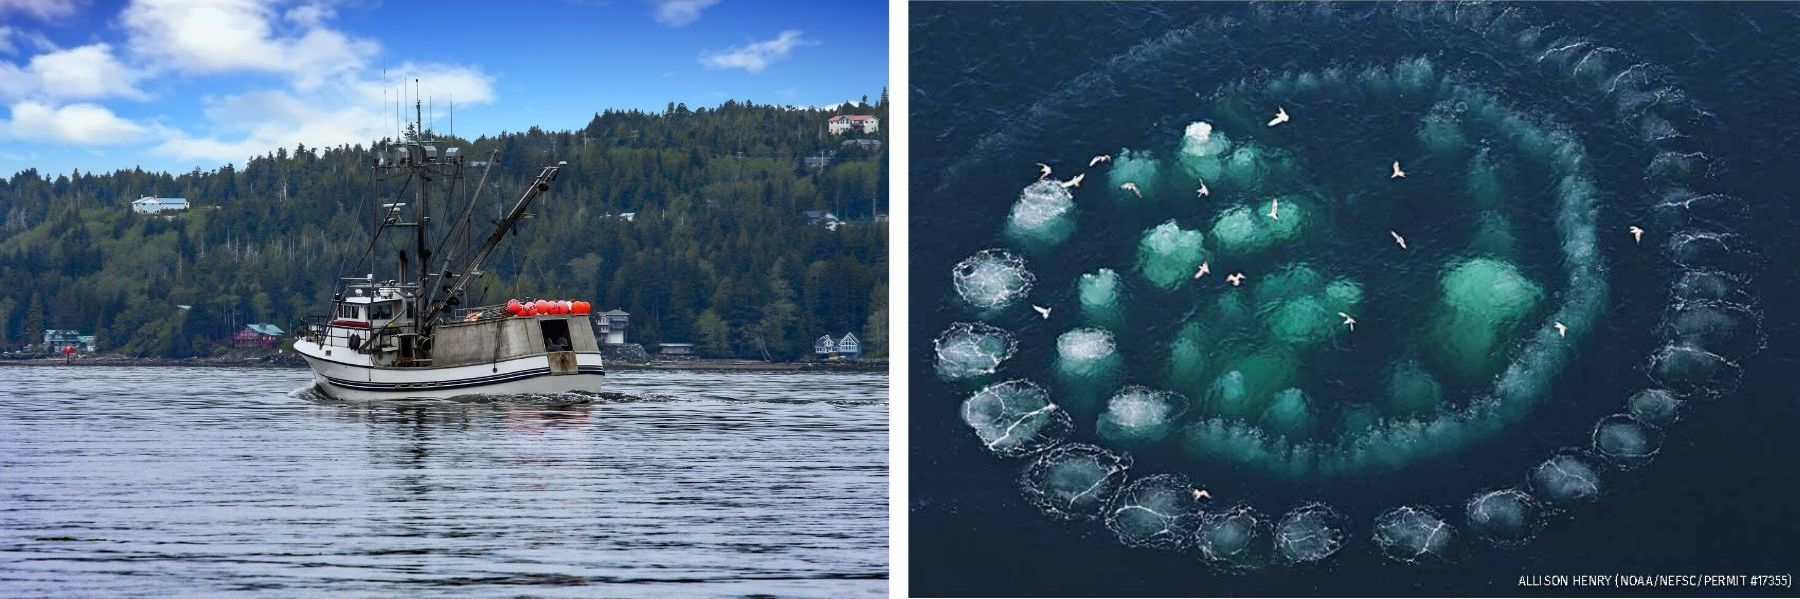 biomimicry applied to solutions in the fishing industry - humpback whales bubble net and spiderweb